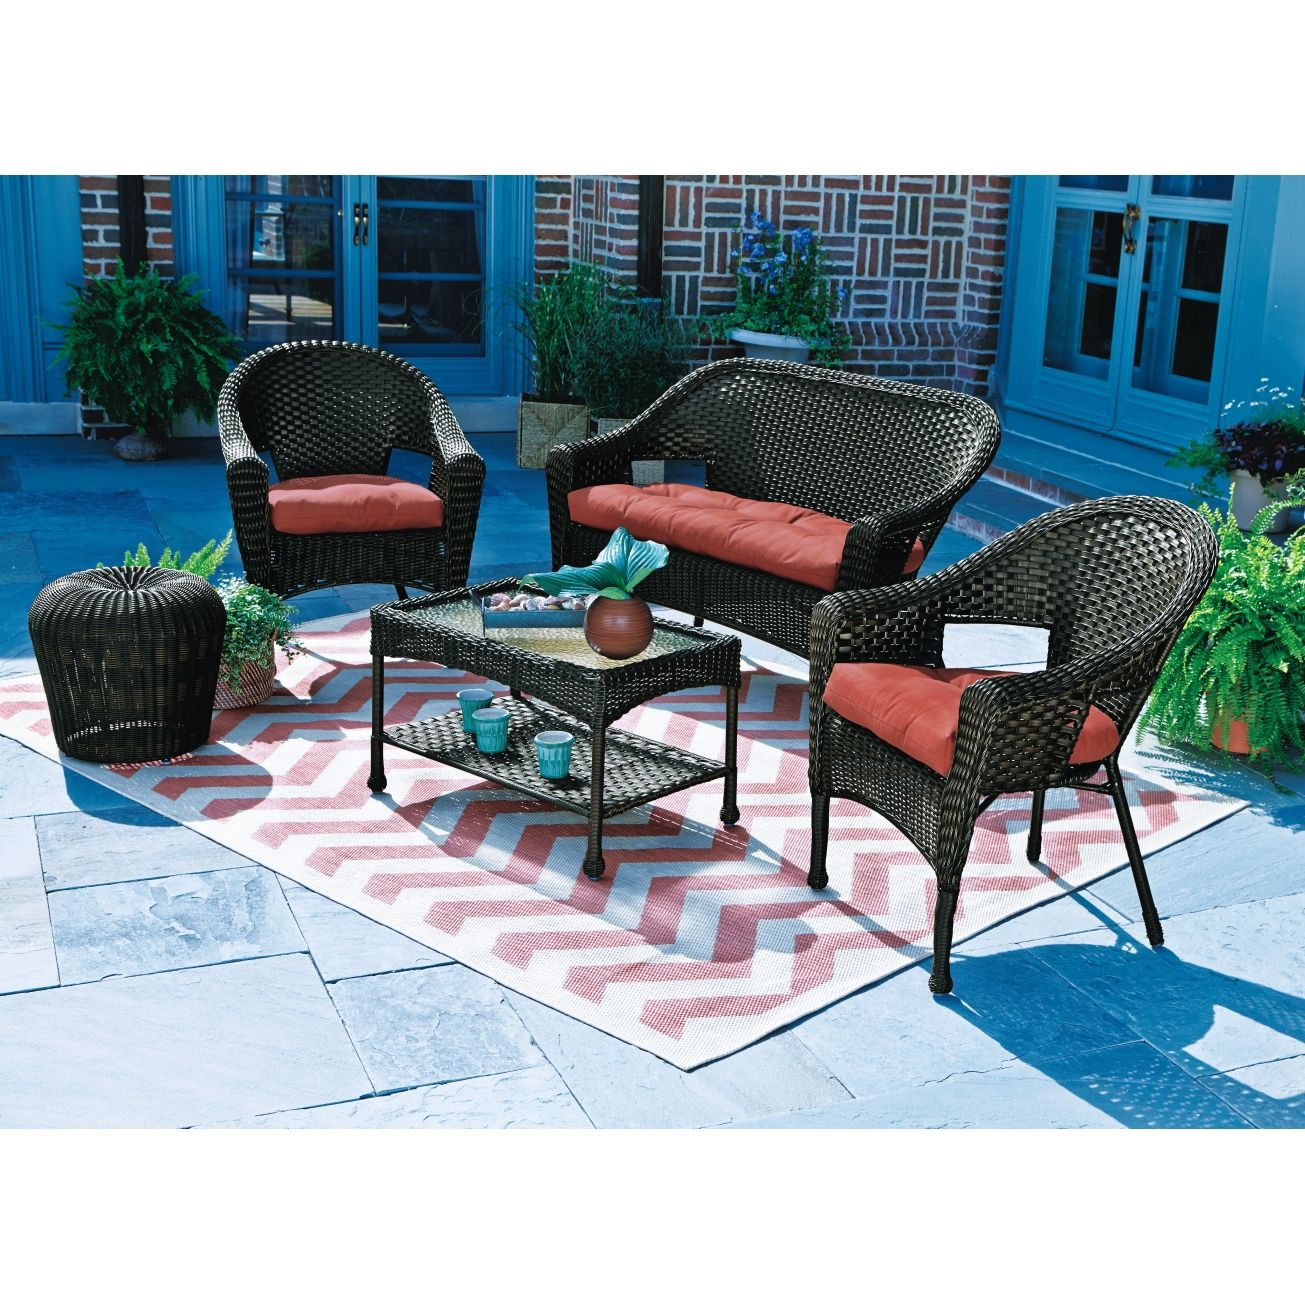 Living Accents Verona Stackable Wicker Chair - Deep Seating Chairs & Love  Seats - Ace Hardware - Living Accents Verona Stackable Wicker Chair - Deep Seating Chairs